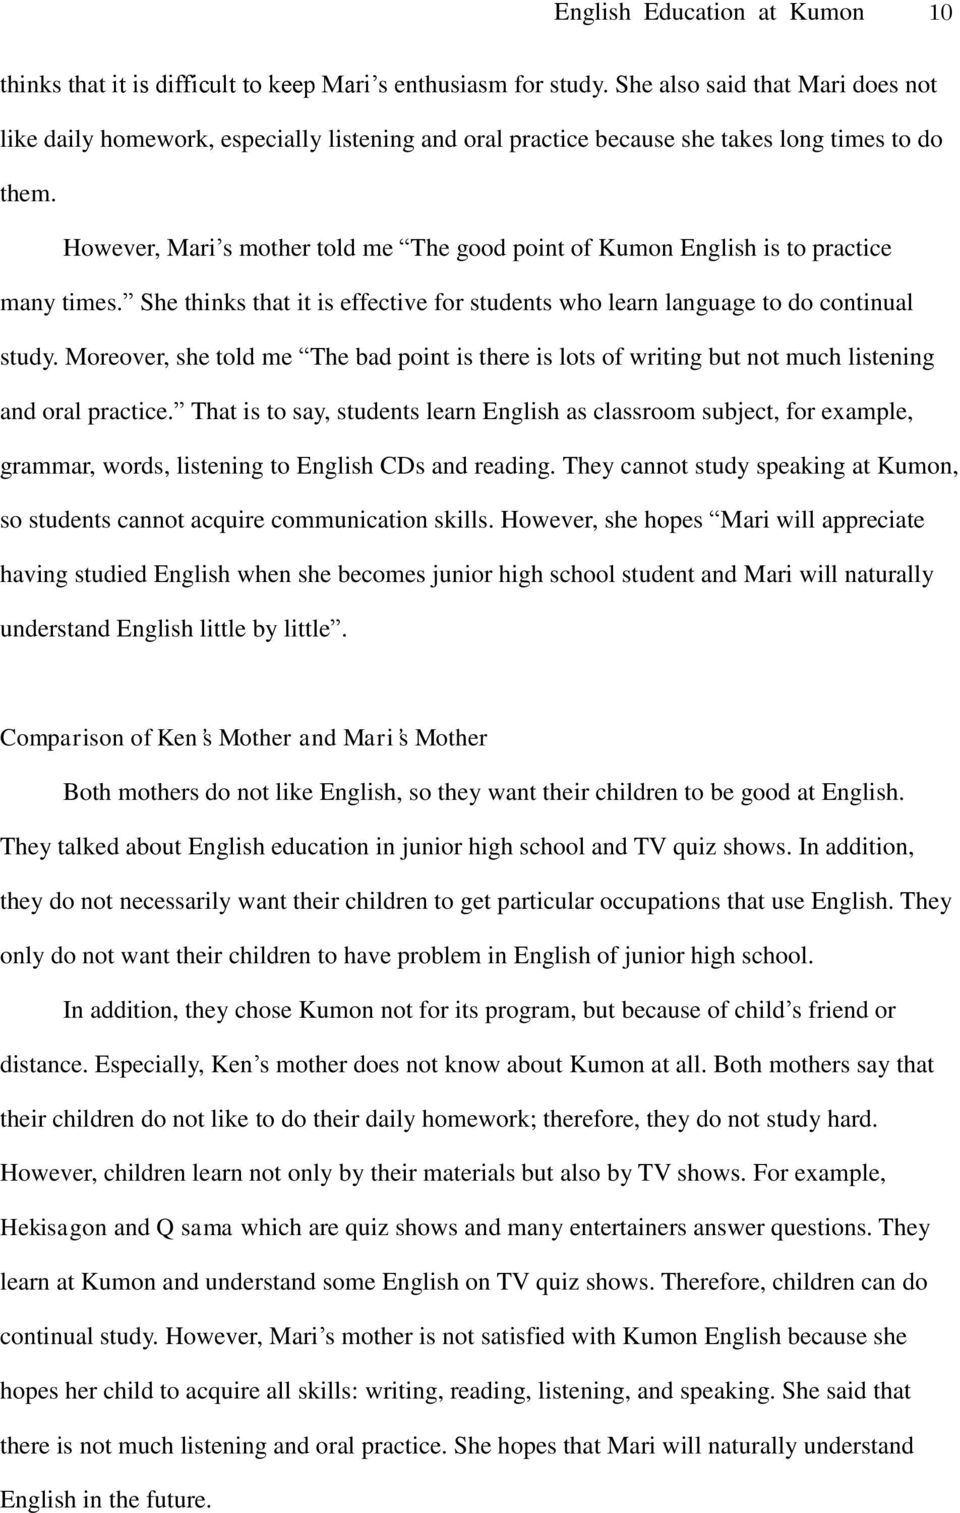 However, Mari s mother told me The good point of Kumon English is to practice many times. She thinks that it is effective for students who learn language to do continual study.